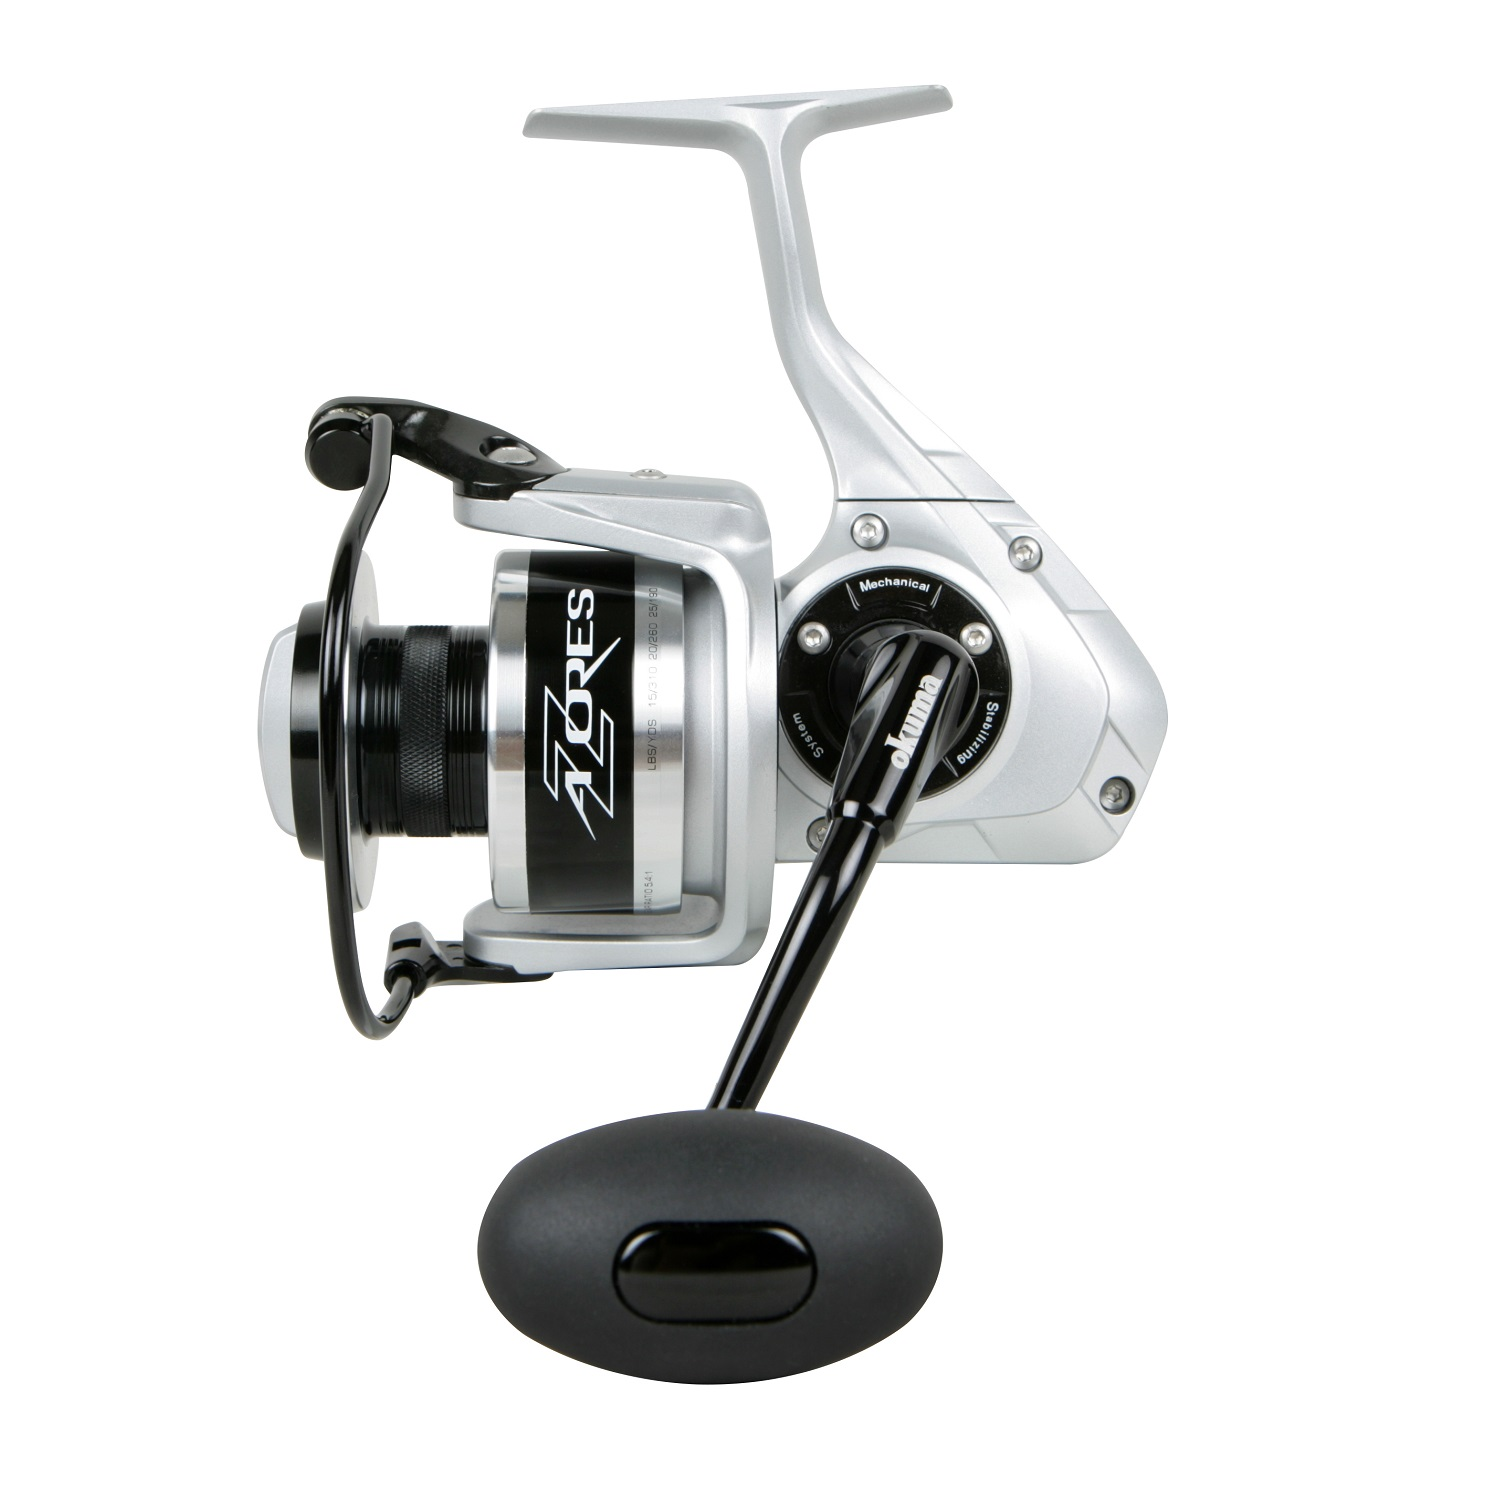 Details about Okuma Azores Saltwater Spinning Reel - Size 40